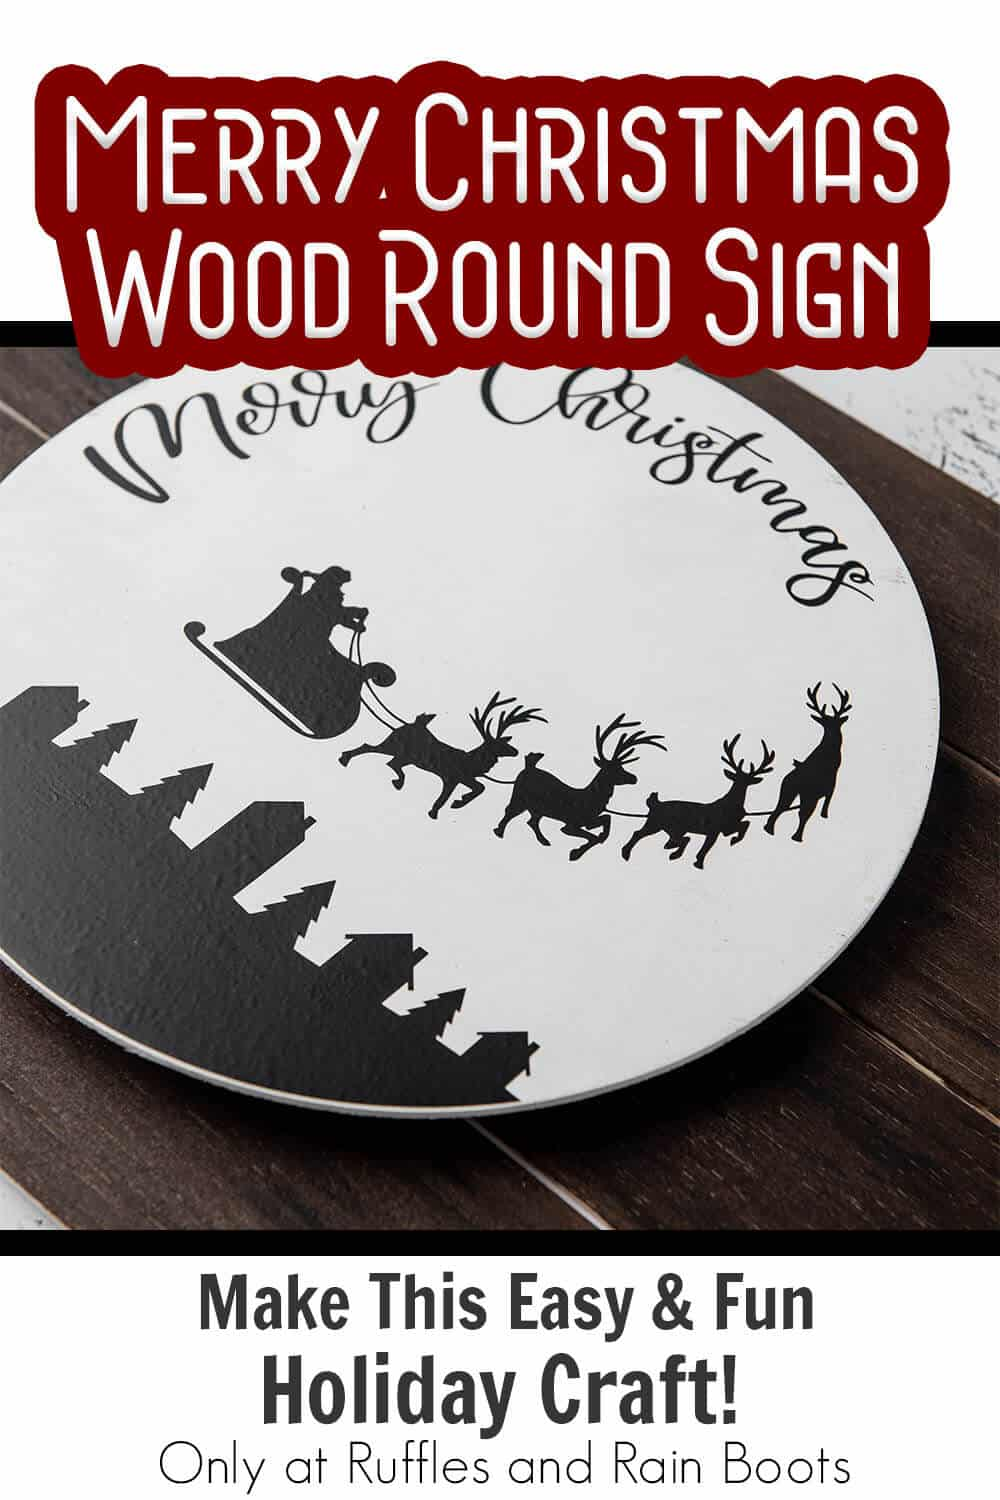 santa sleigh wood round sign with text which reads merry christmas wood round sign make this easy & fun holiday craft!